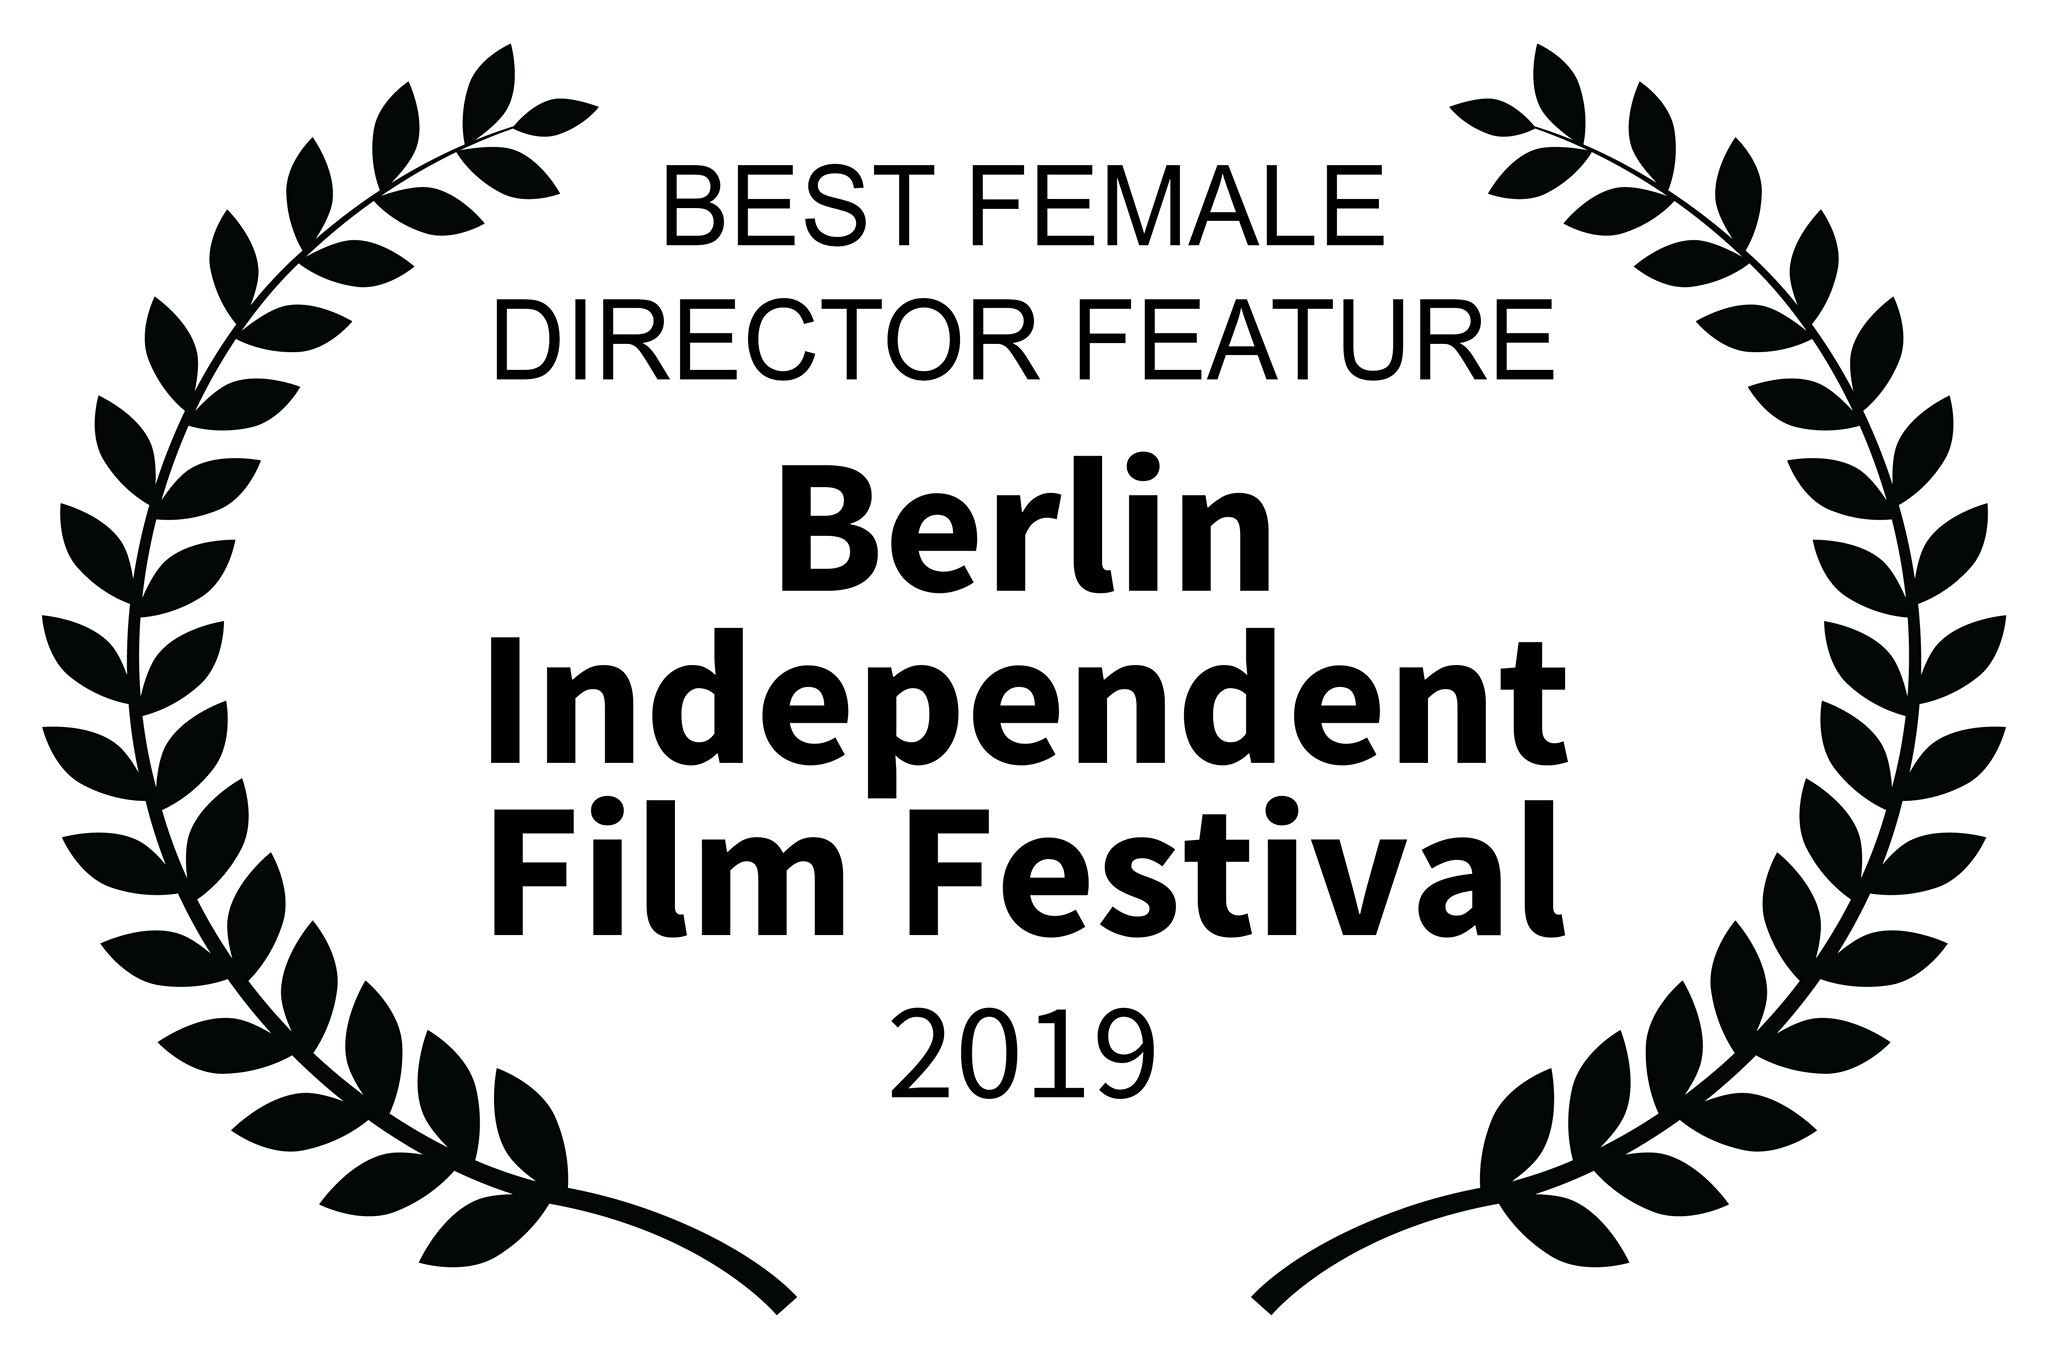 Beste Female Director Feature - Berlin Independent Film Festival